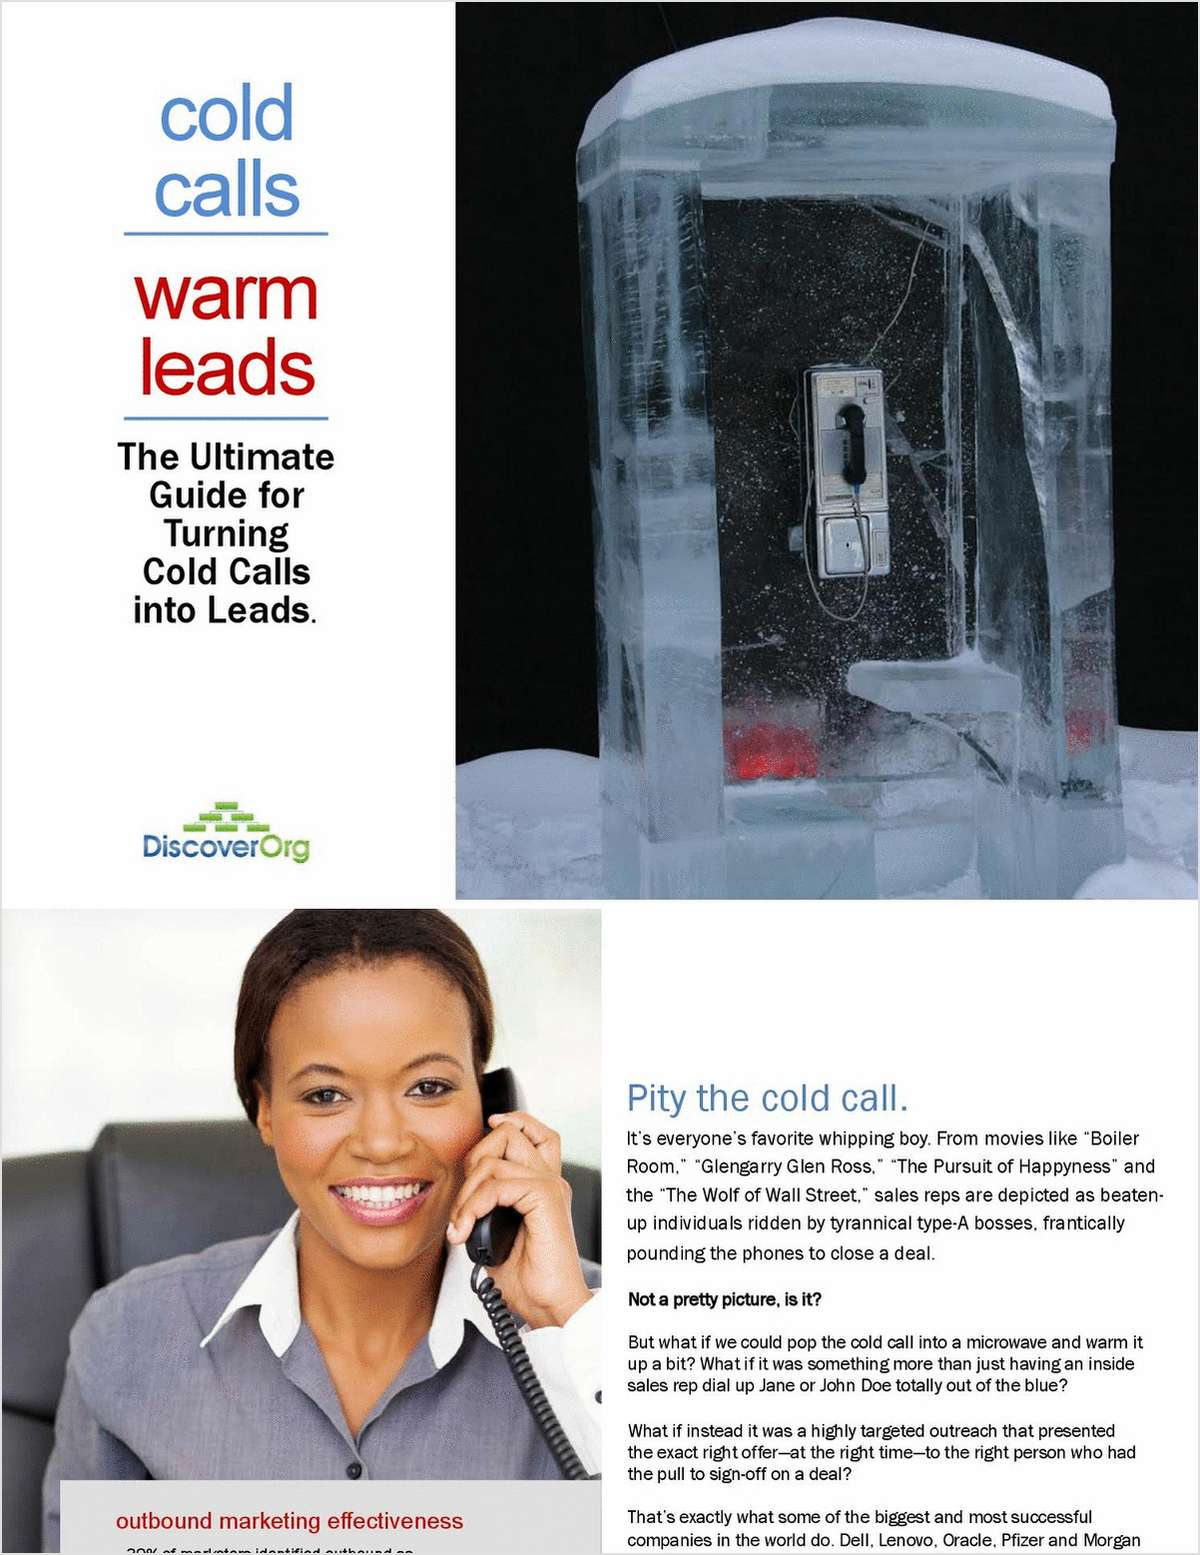 Cold Calls, Warm Leads: The Ultimate Guide for Turning Cold Calls Into Leads